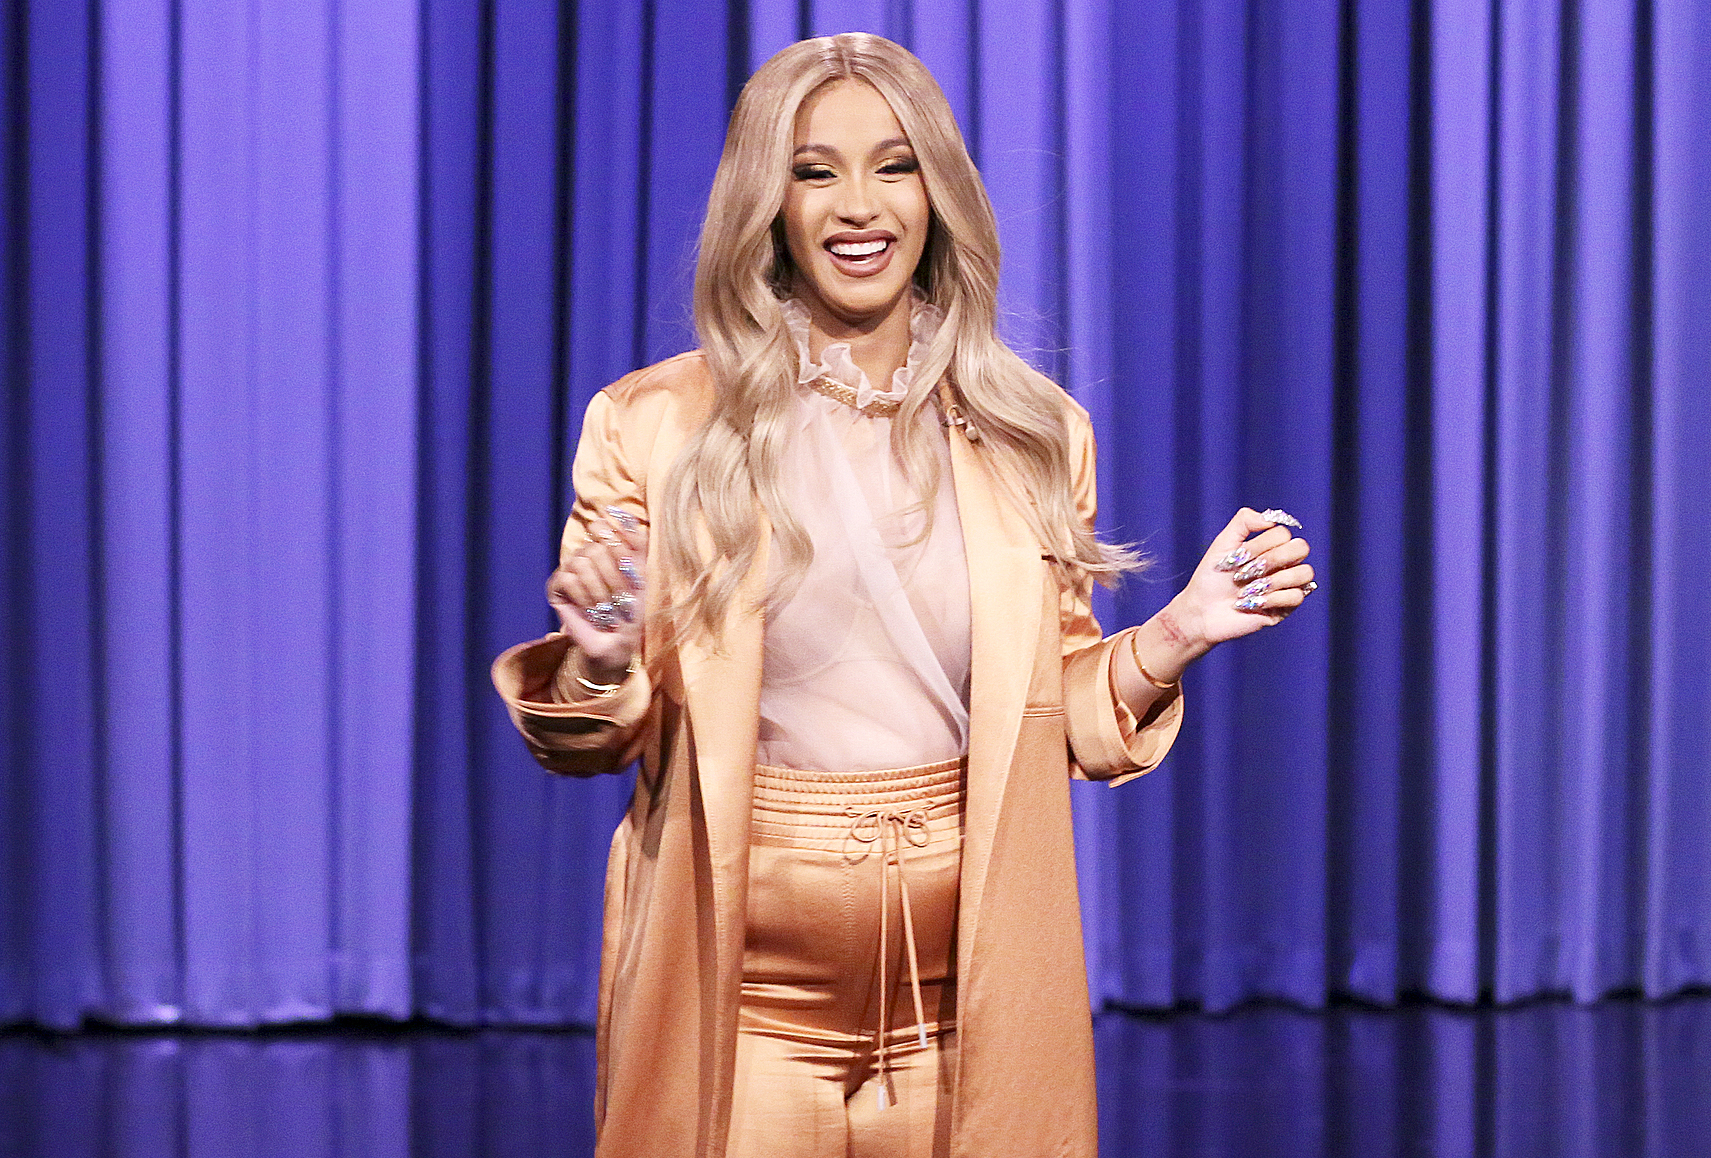 Pregnant Cardi B to Appear on Total Request Live Special